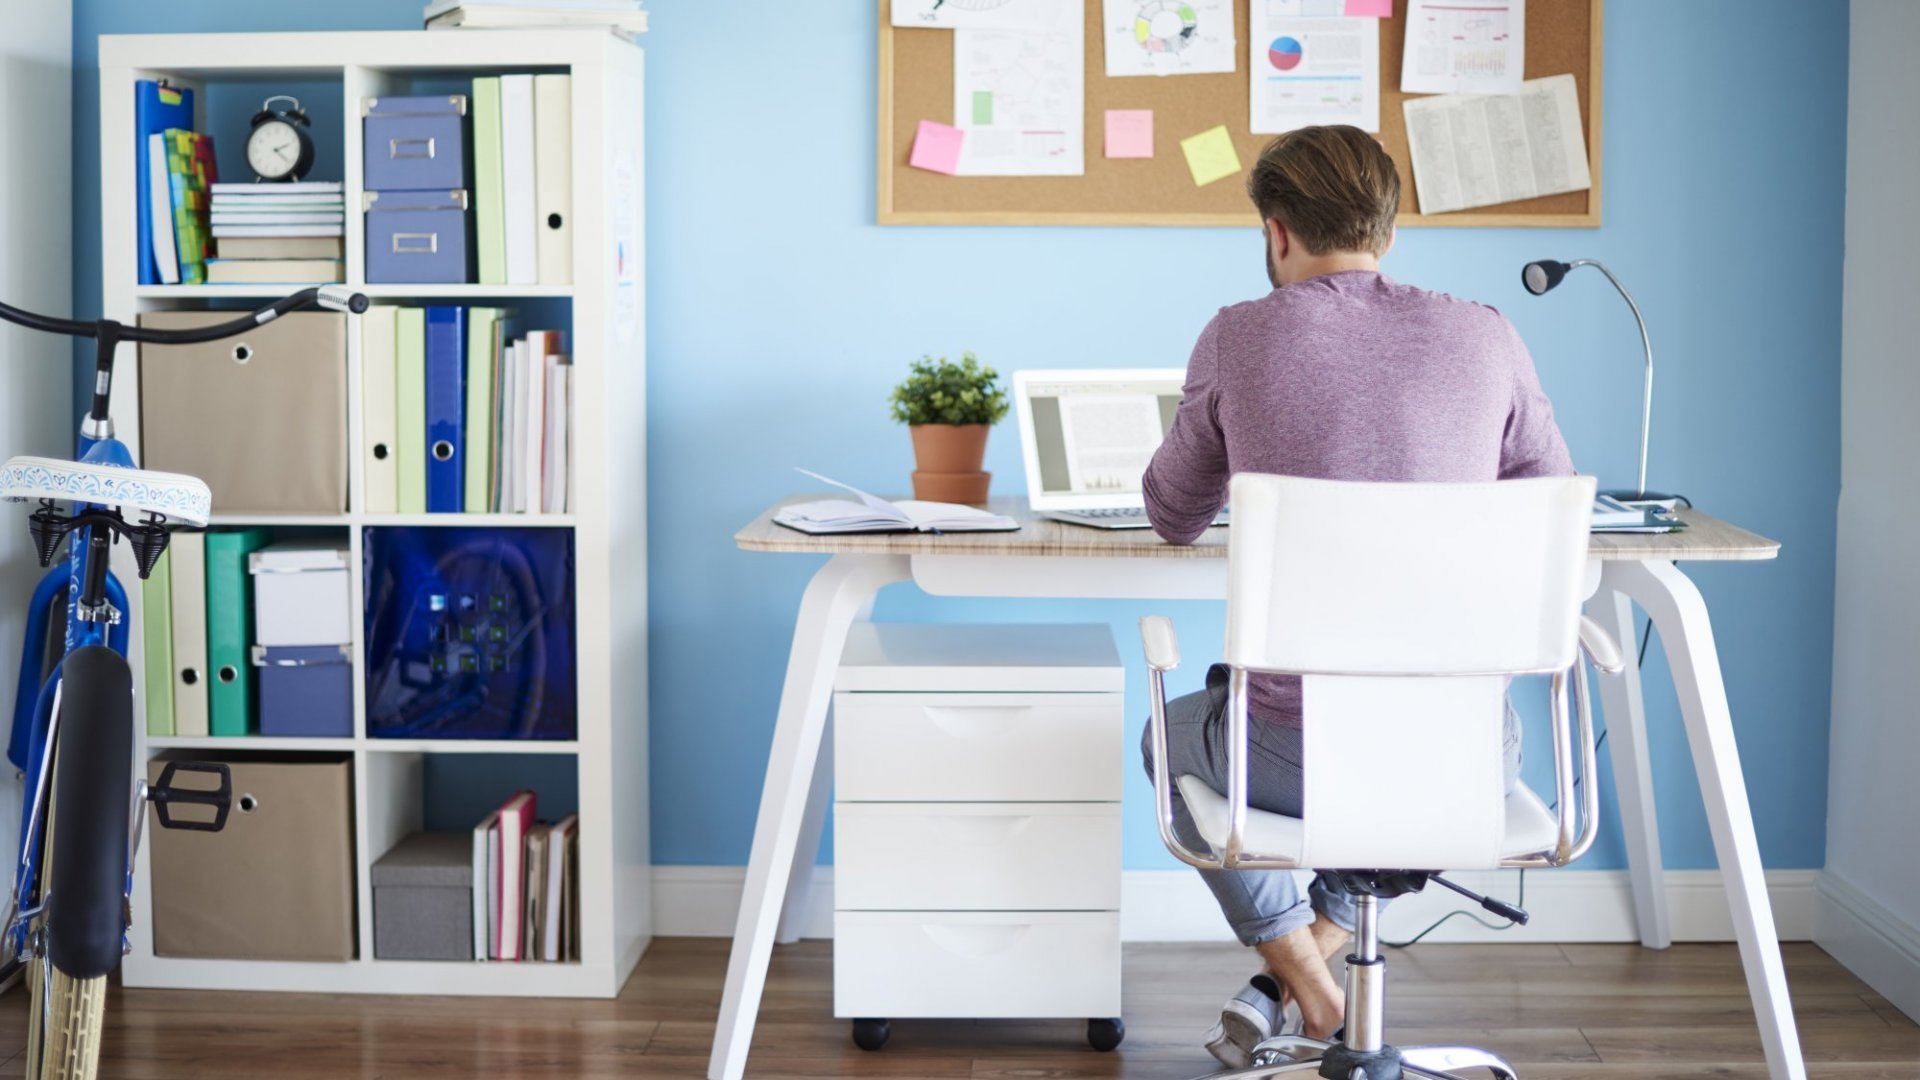 13 Companies That Are Hiring and Offering Insane Benefits (Like Working From Home) Right Now